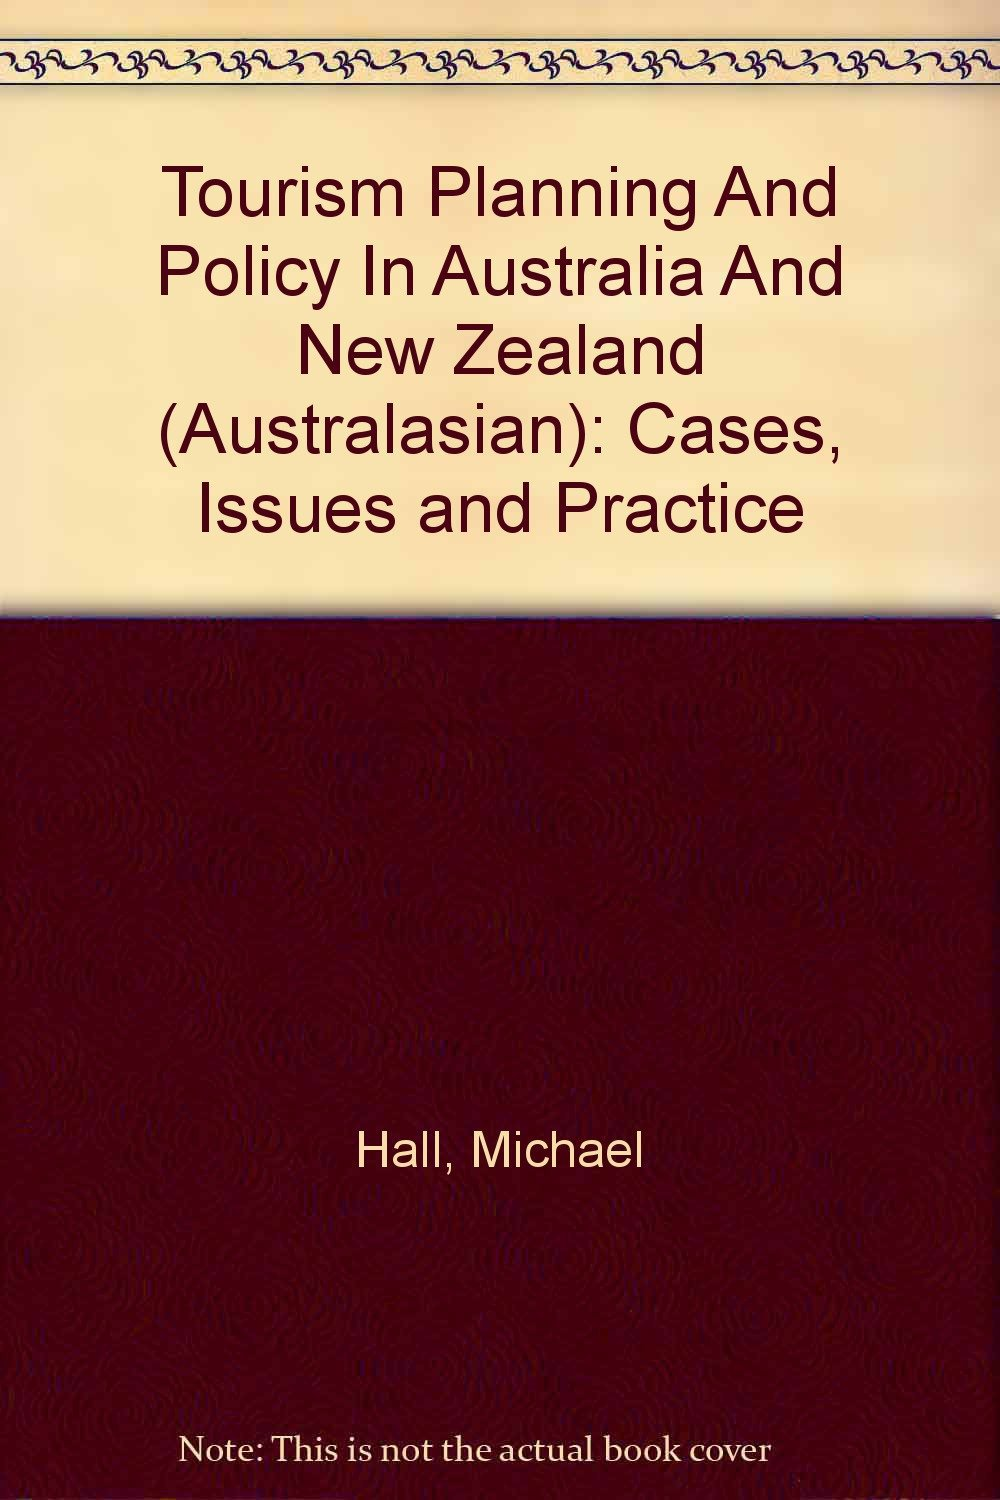 Tourism Planning and Policy in Australia and New Zealand: Cases, Issues and Practice